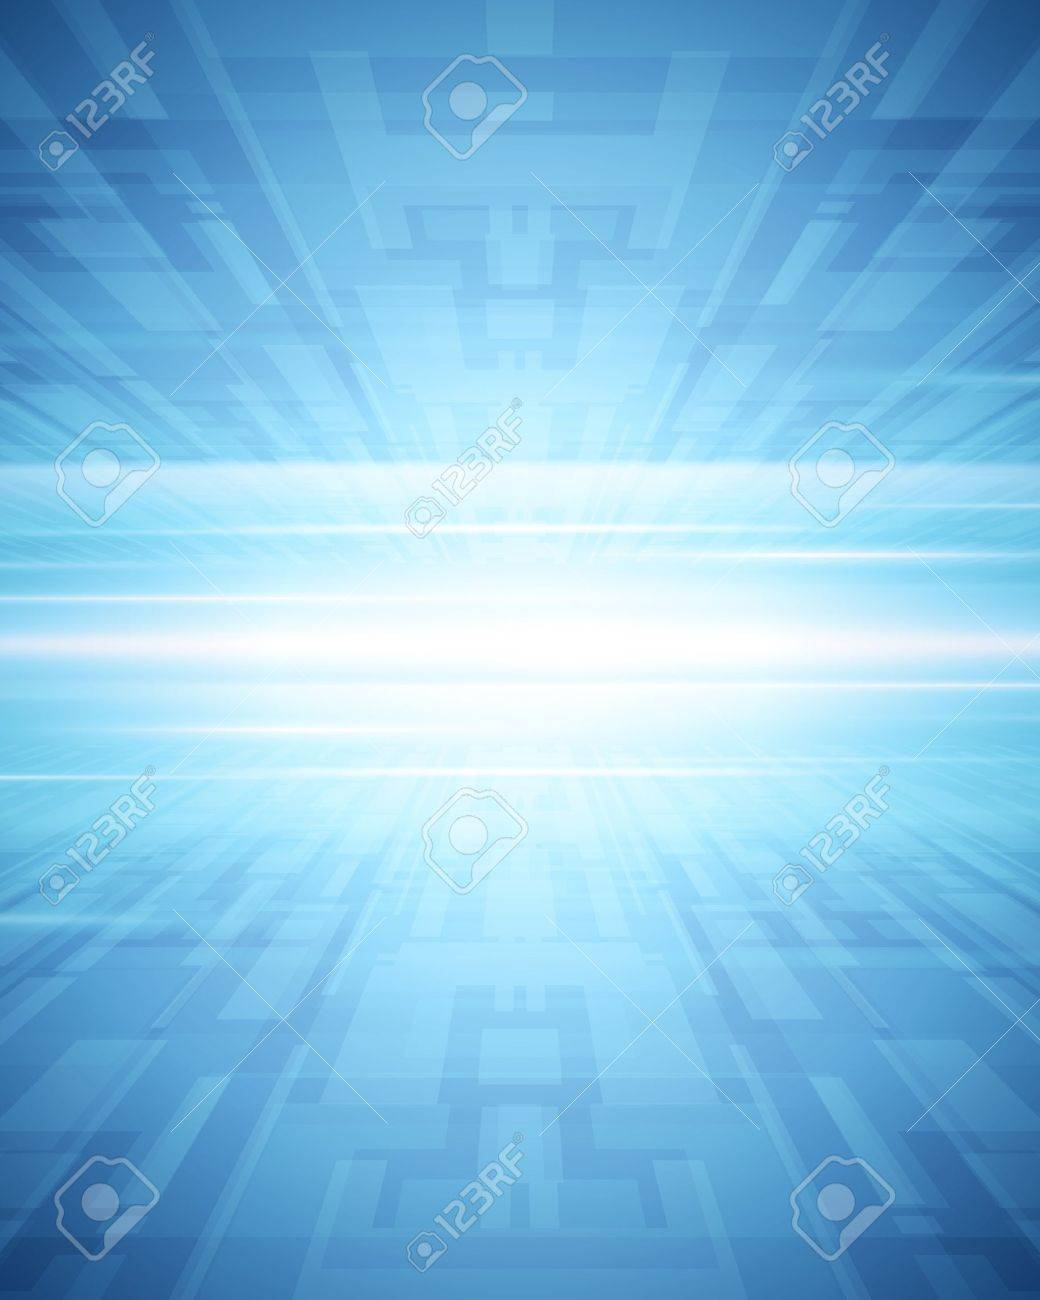 Abstract 3d virtual space vector background - 13908326